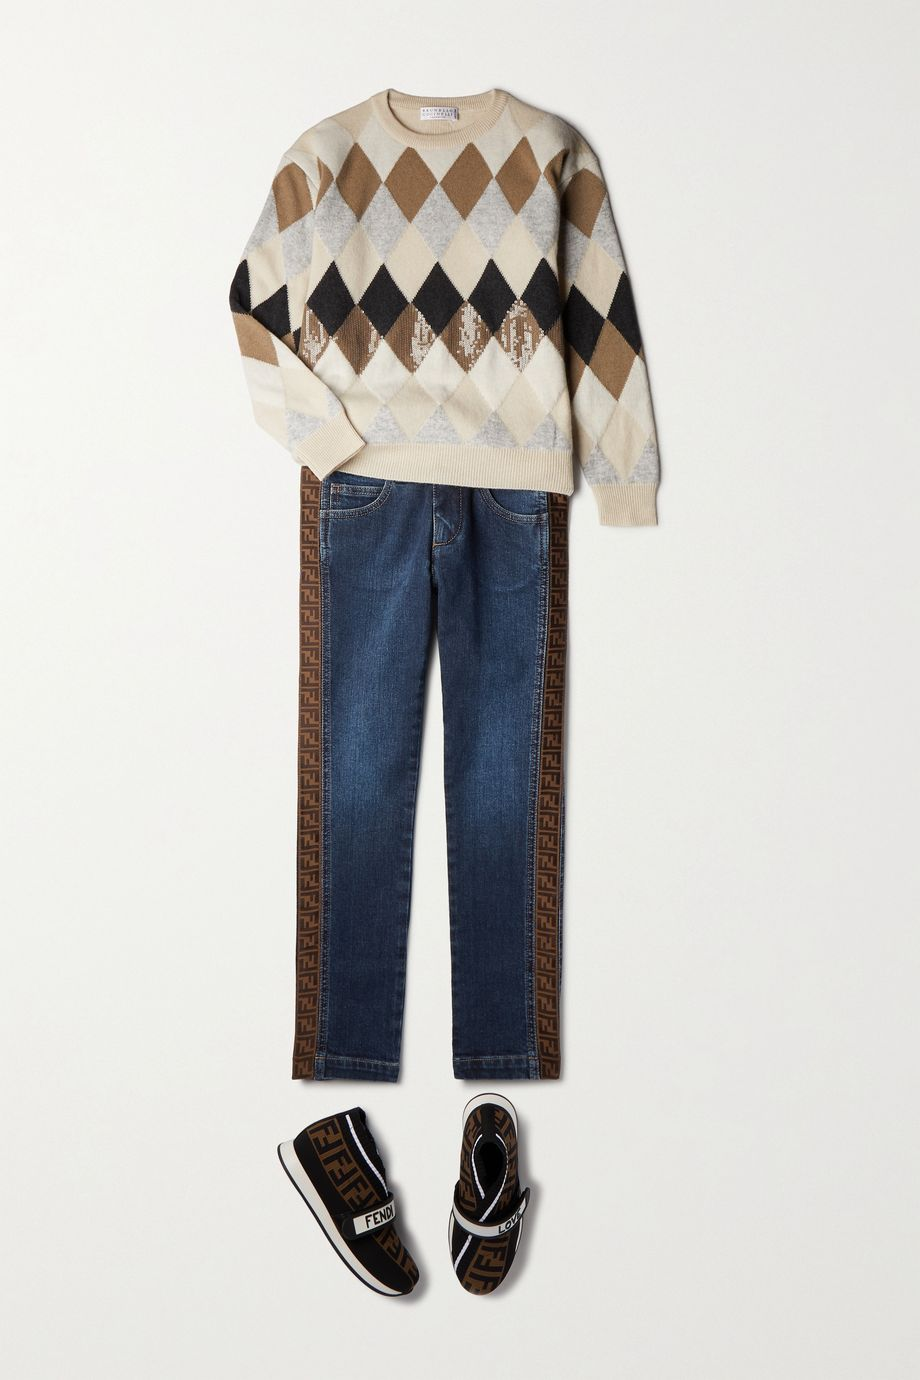 Fendi Kids Ages 8 - 12 jacquard-trimmed jeans